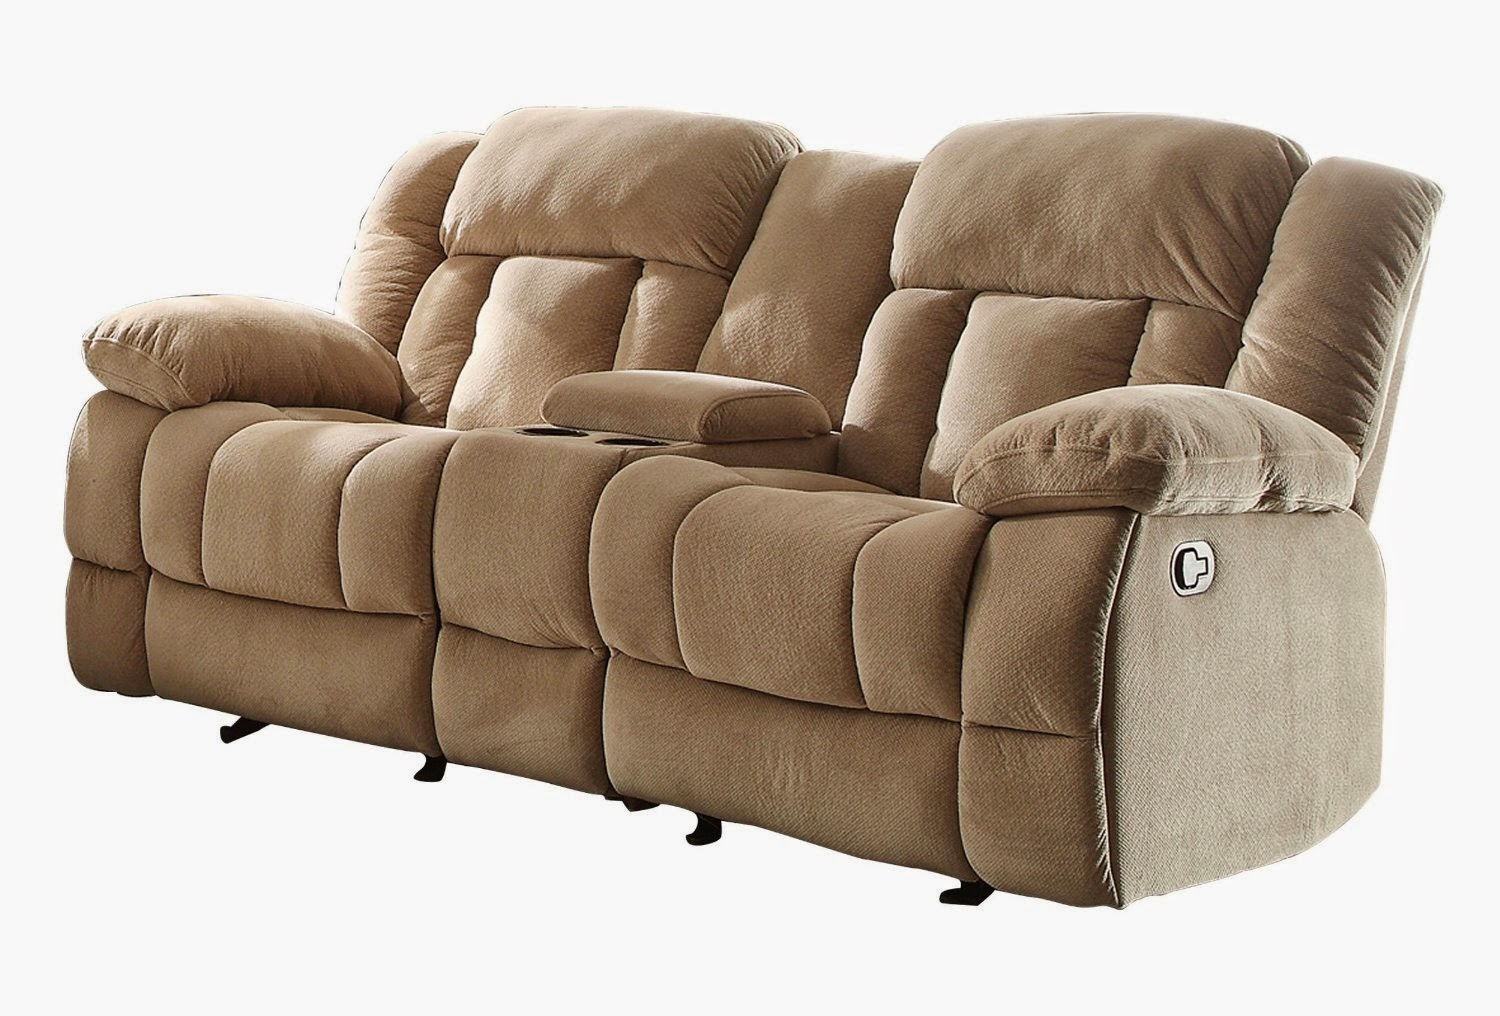 reclining two seat sofa bed mattress brisbane where is the best place to buy recliner 2